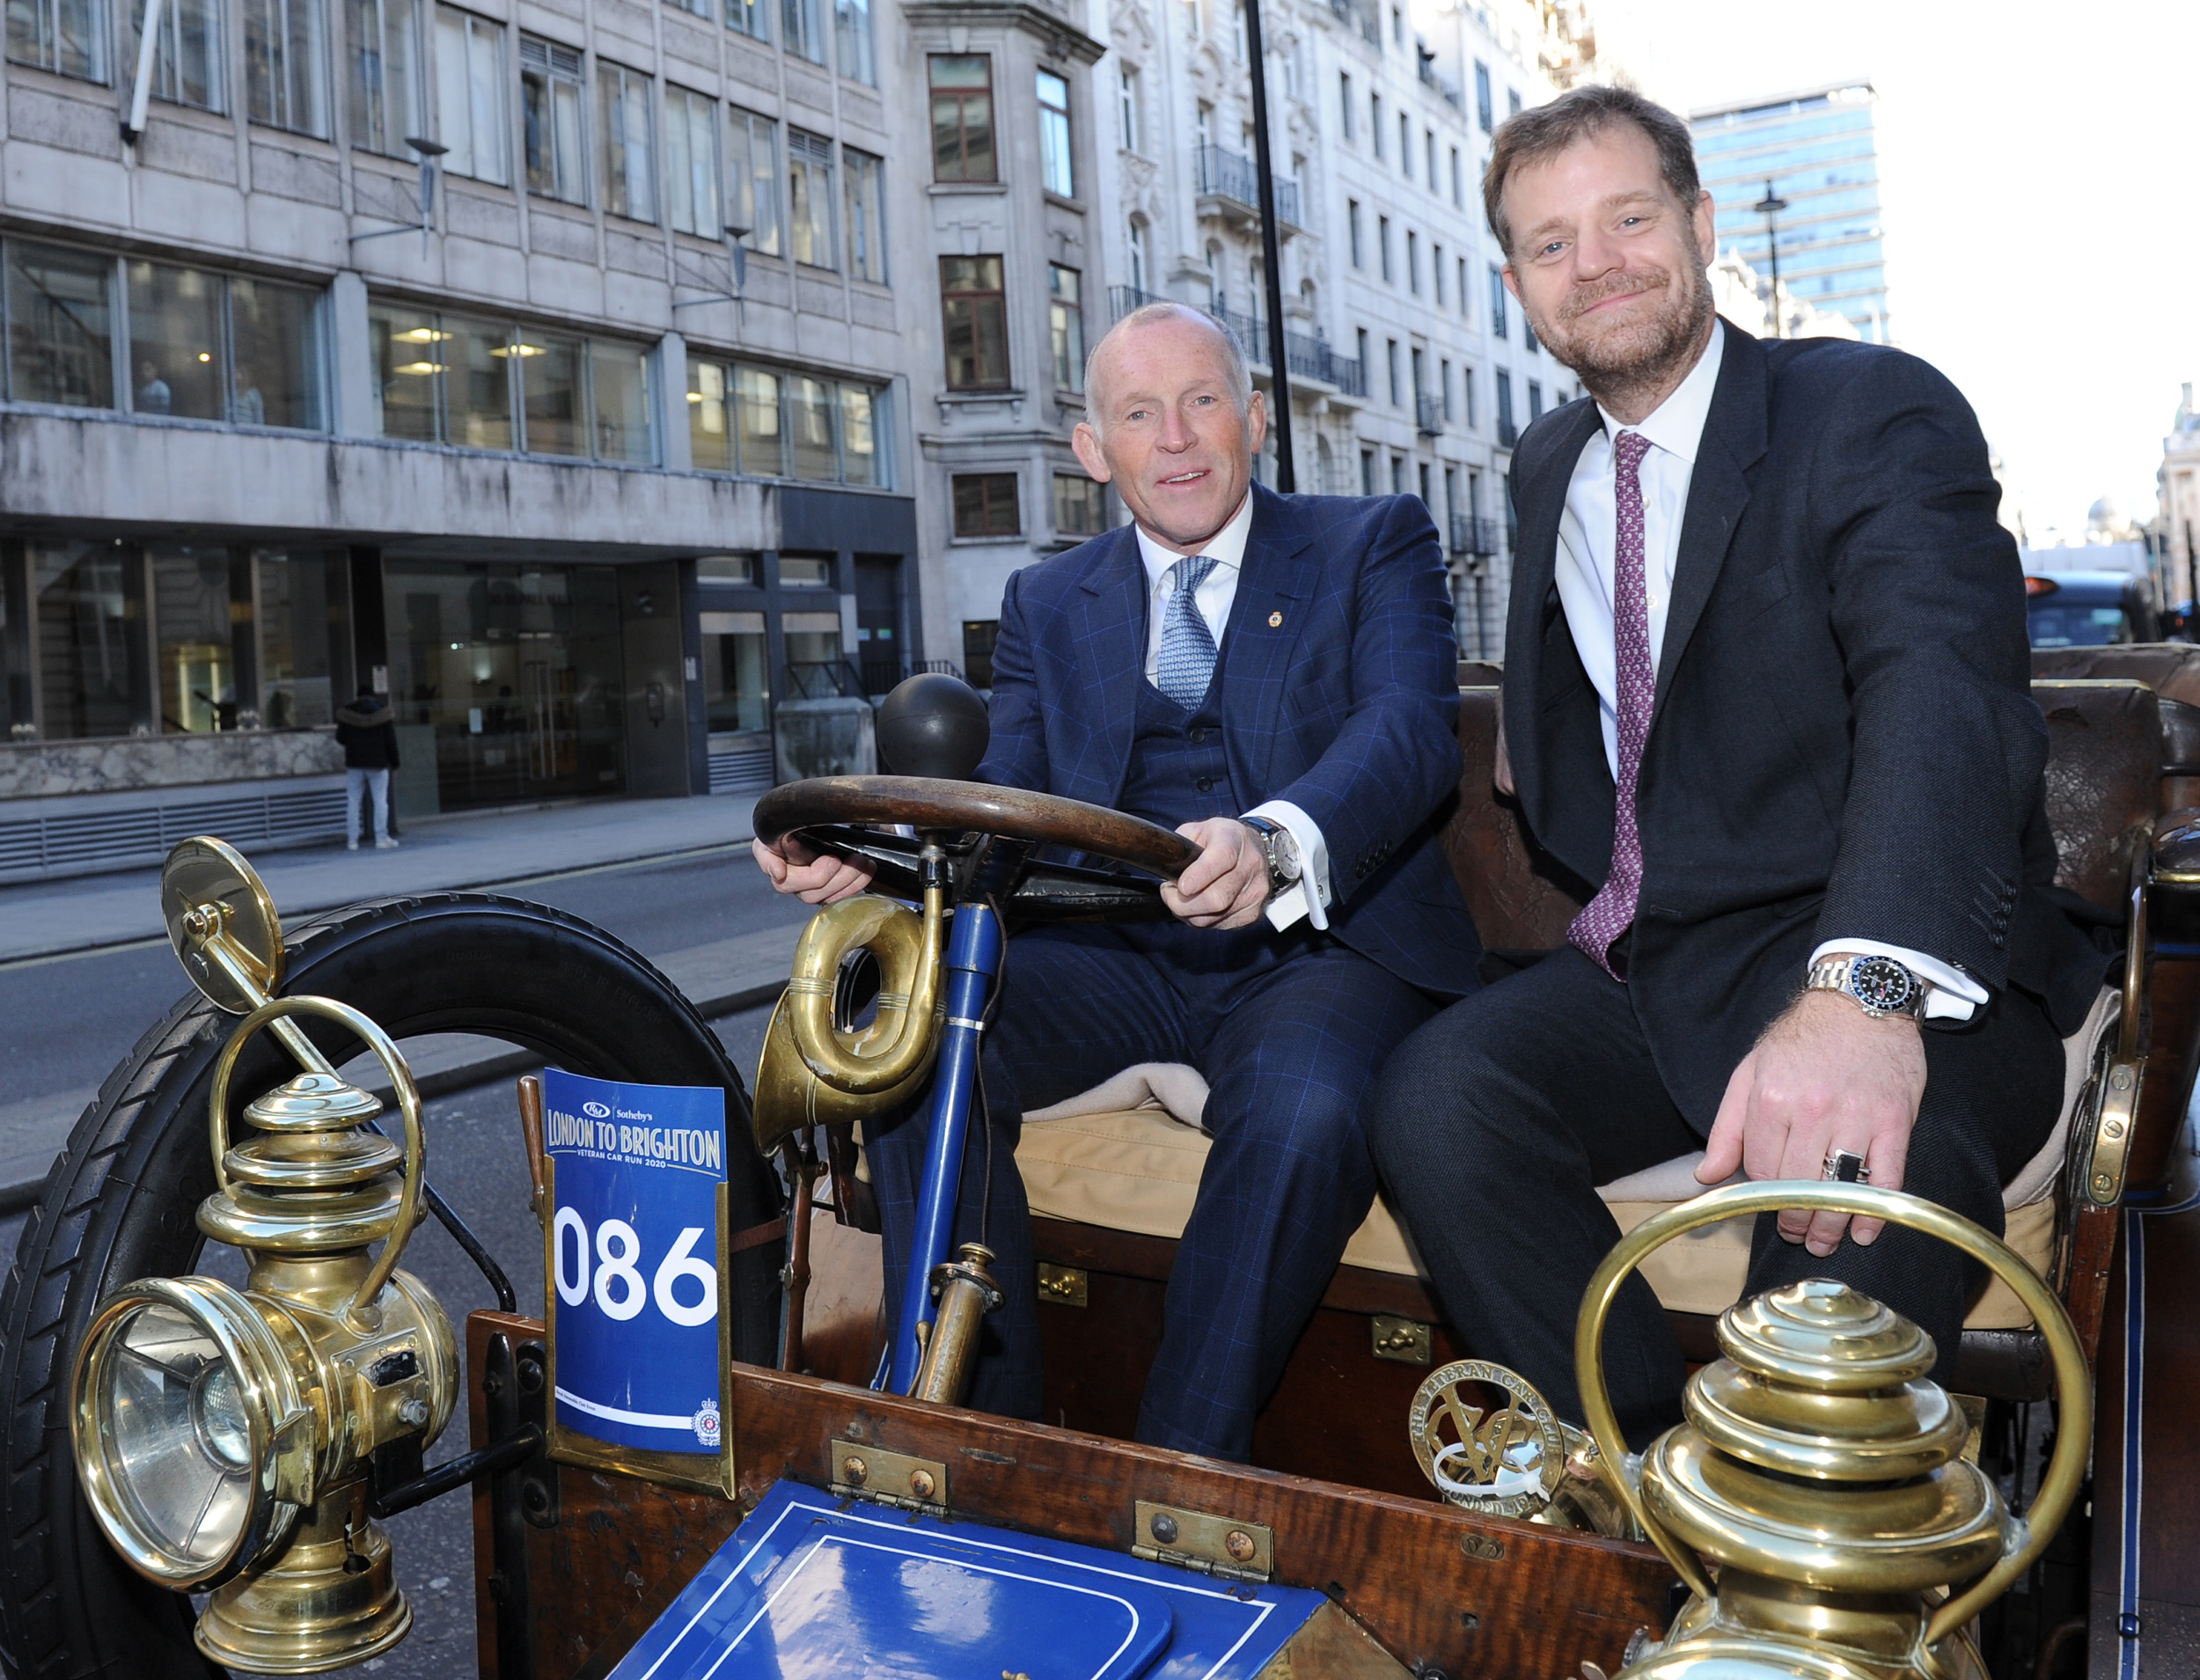 200130 Maarten ten Holder, Head of Europe & Chief Auctioneer, RM Sotheby's (left above) and Ben Cussons, Chairman of the Royal Automobile Club.